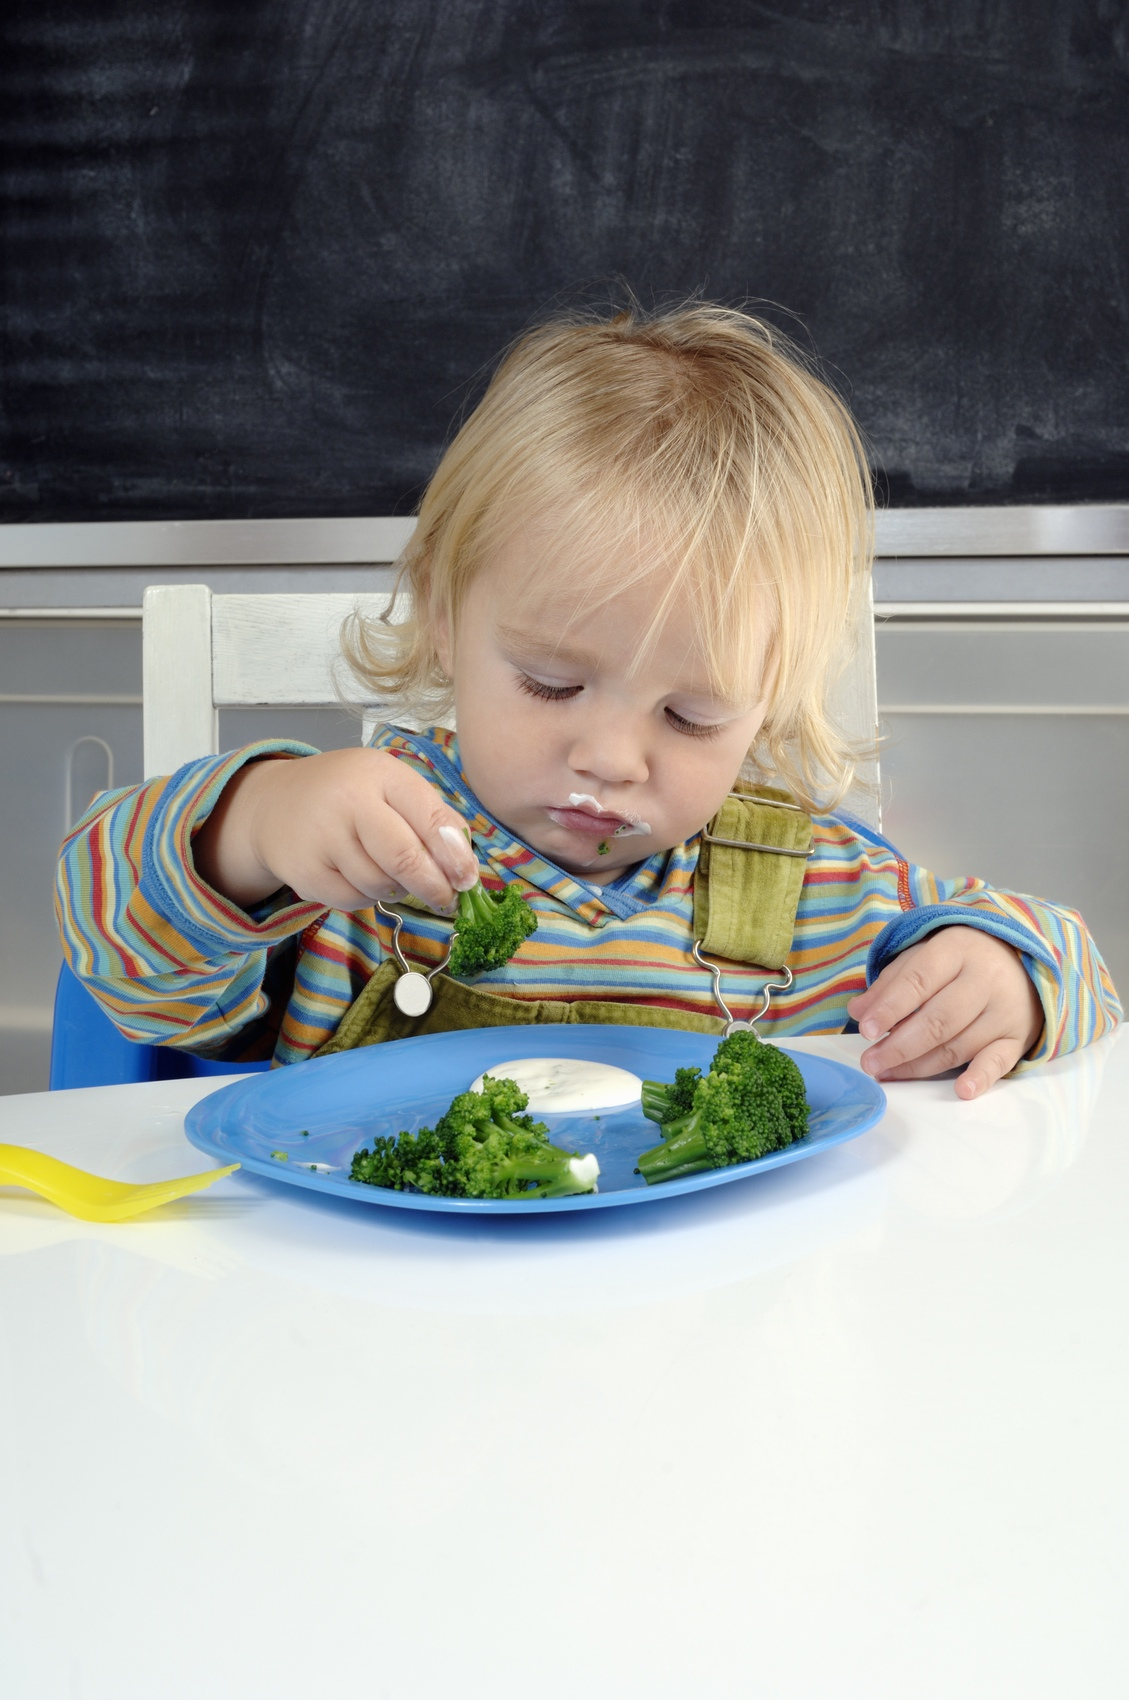 enfant en train de manger